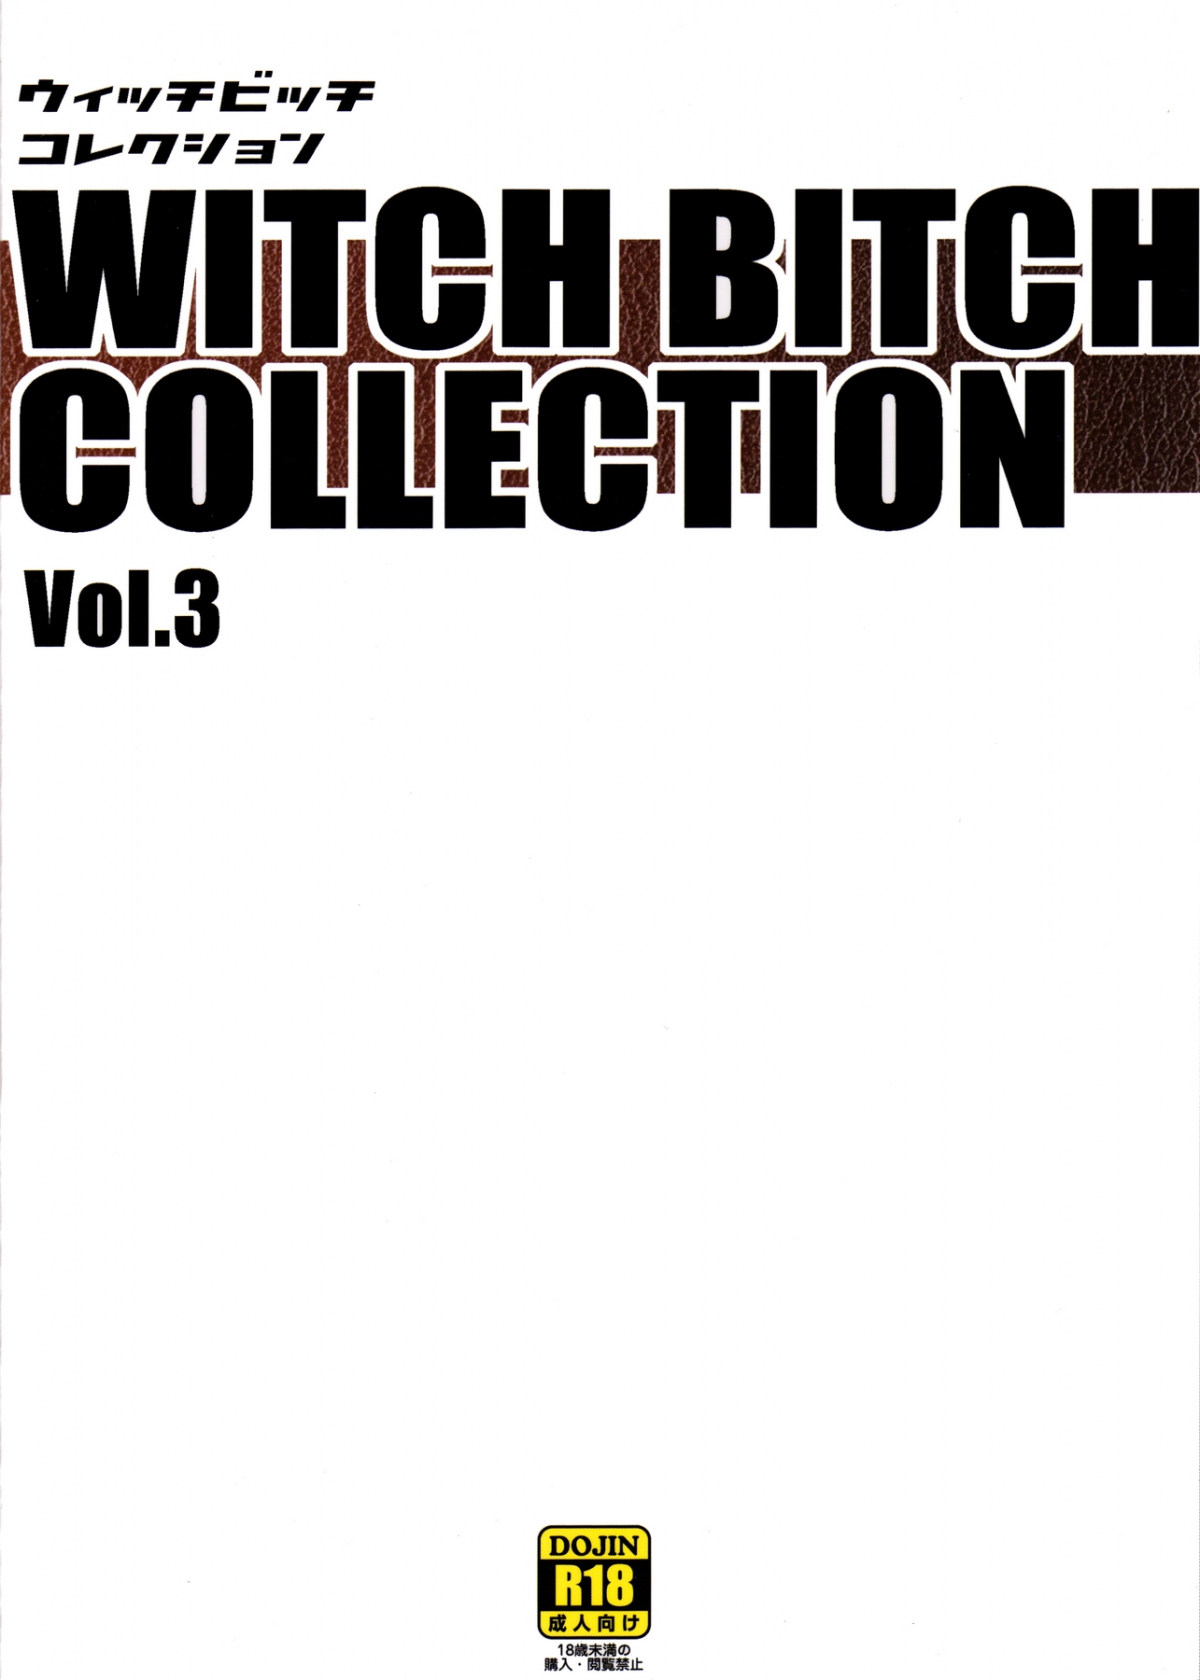 HentaiVN.net - Ảnh 30 - Witch Bitch Collection Vol 3 - Funi Funi Lab (Tamagoro) - Chap 2